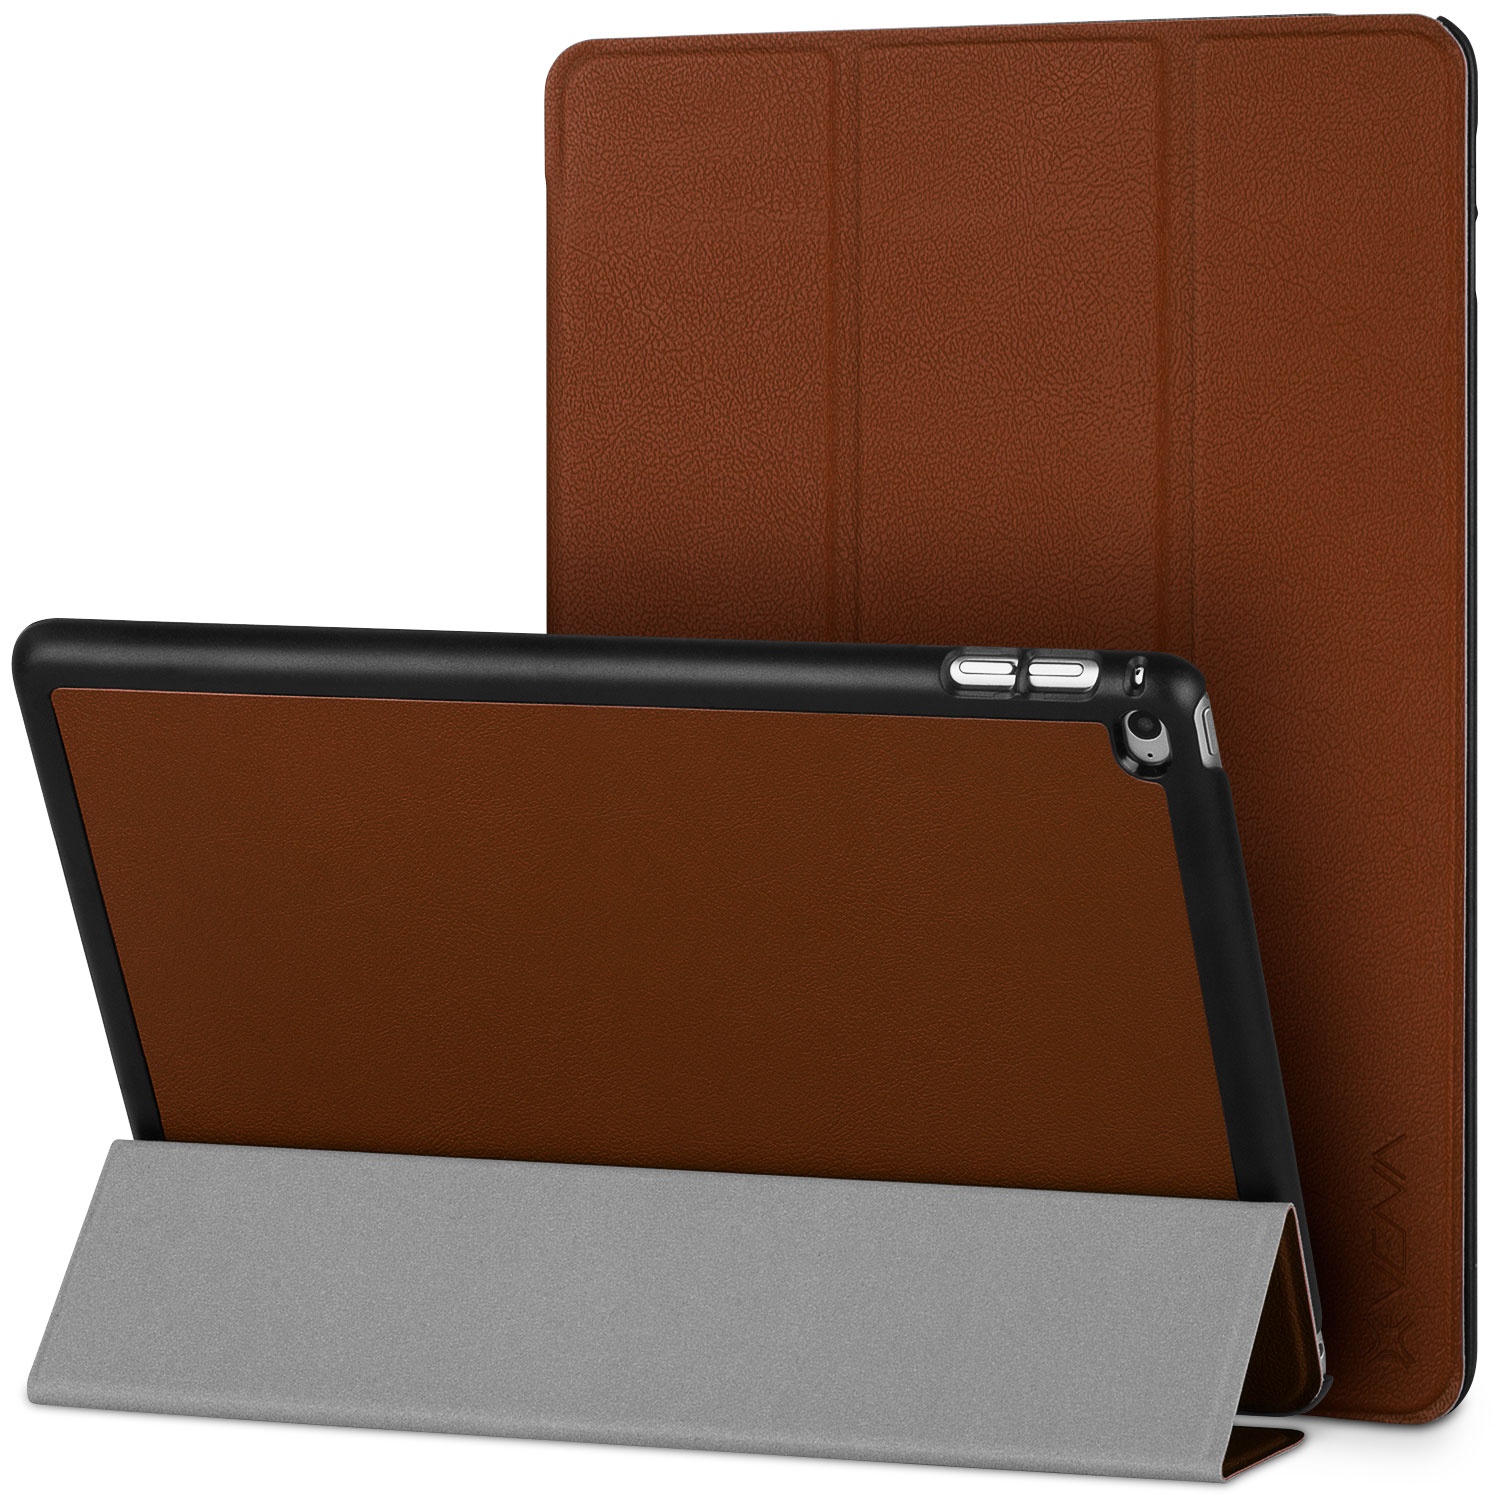 iPad Air 2 Smart Cover - VENA [vCover] Slim Leather Auto Sleep / Wake Hard Shell Case for Apple iPad Air 2 (2014) - Brown